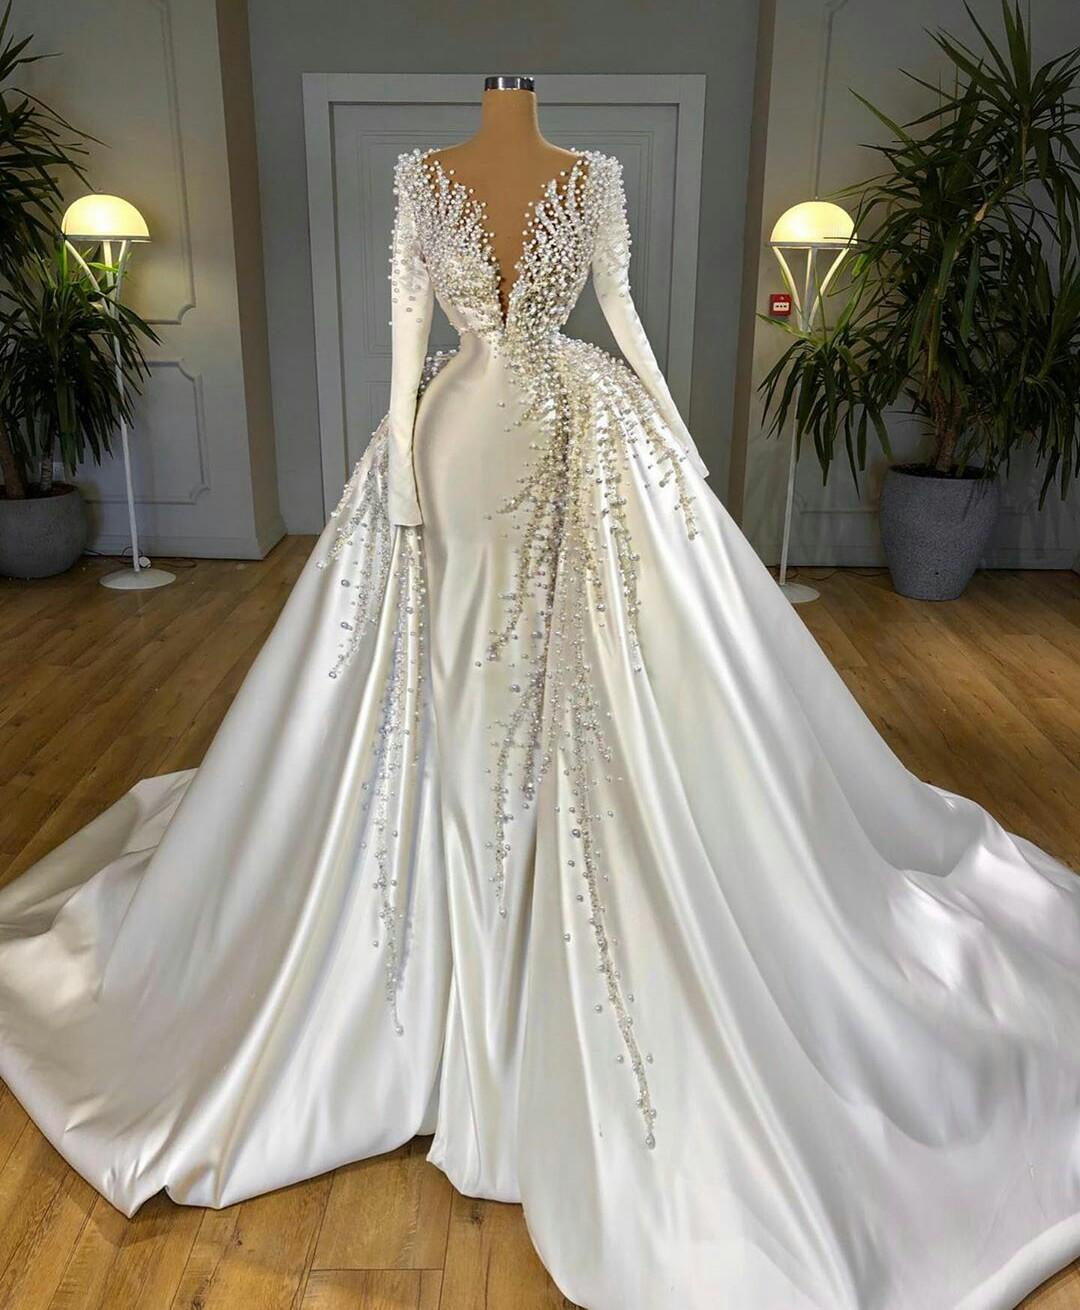 Gorgeous Satin Pearls Mermaid Wedding Dresses Bridal Gowns With Detachable Train Long Sleeve V Neck Beaded Crystal Marriage Robe De Mariee